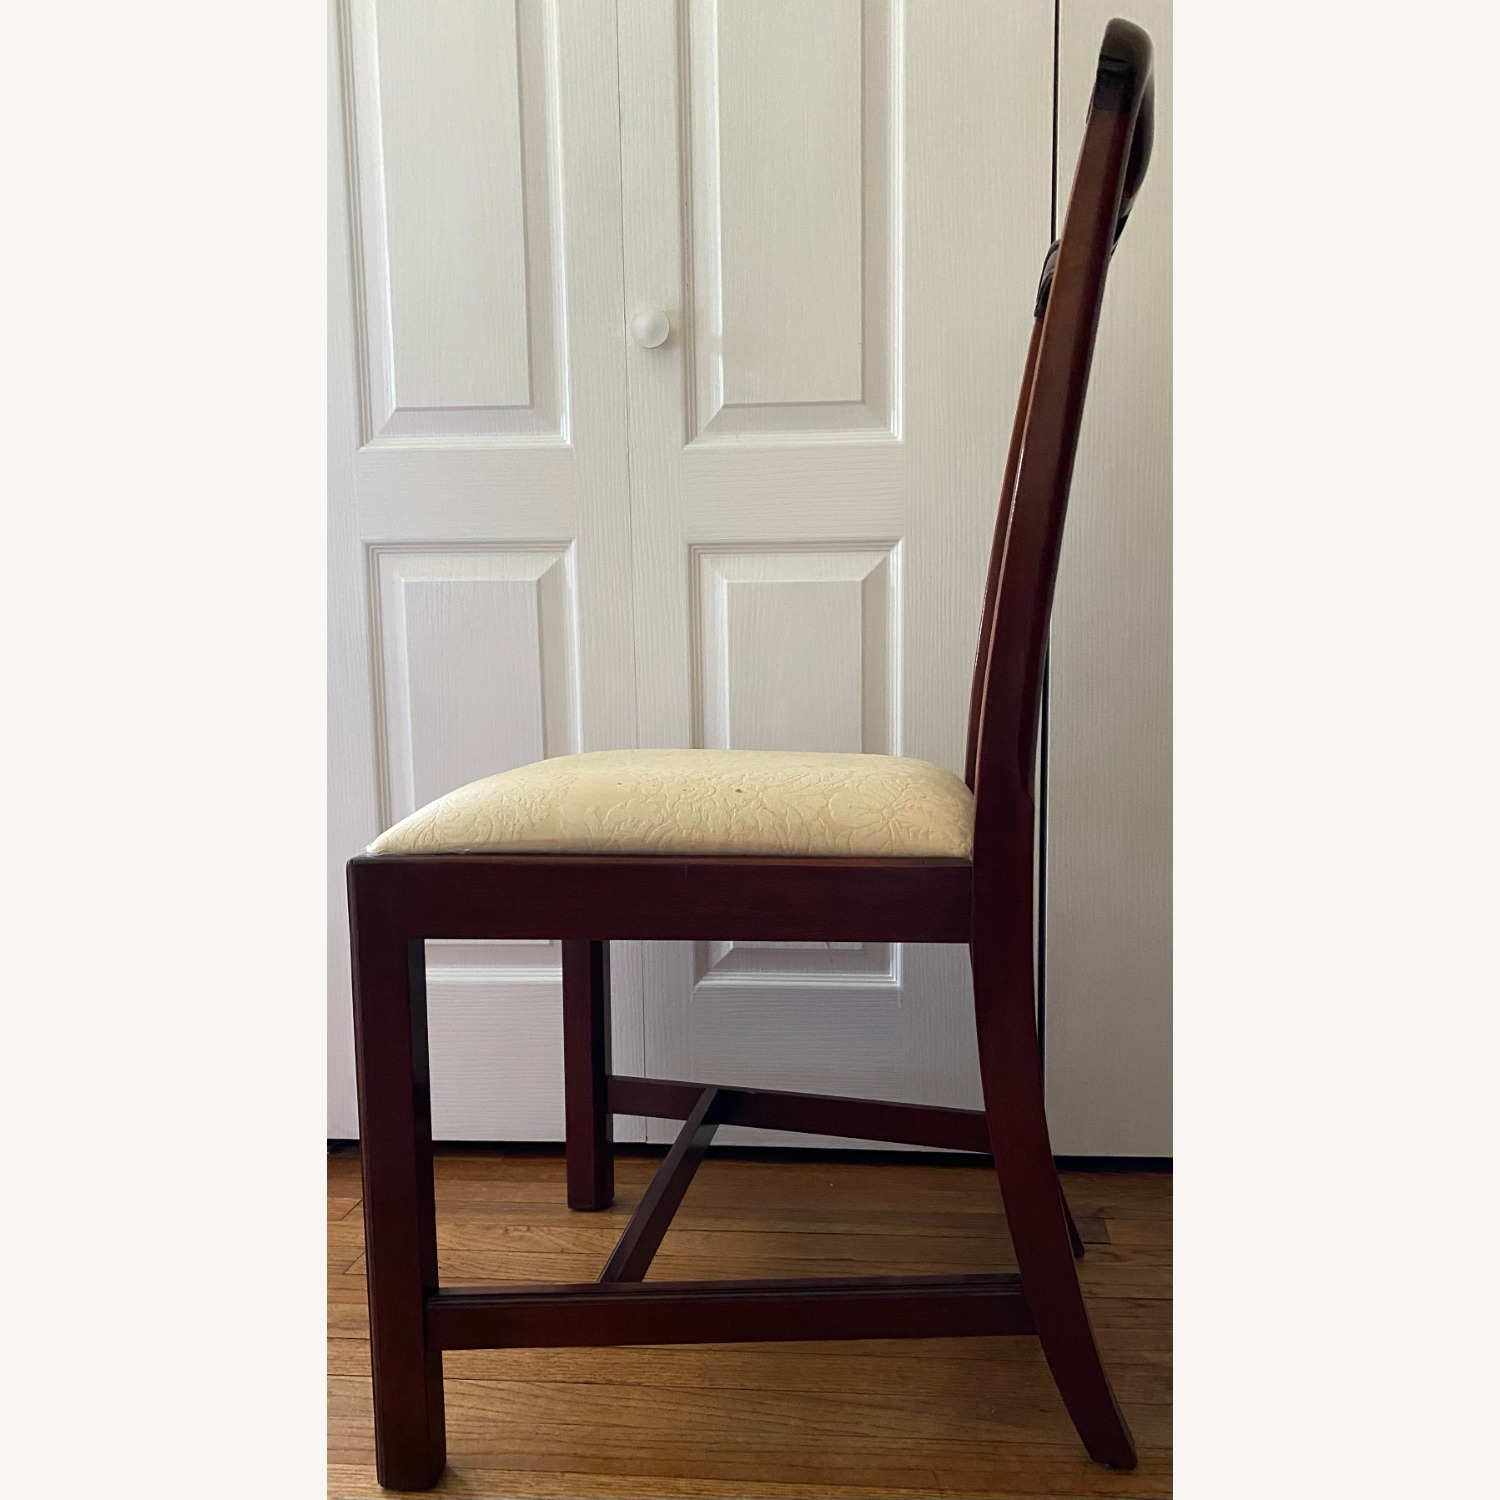 4 Councill Mahogany Chippendale Dining Chairs - image-5